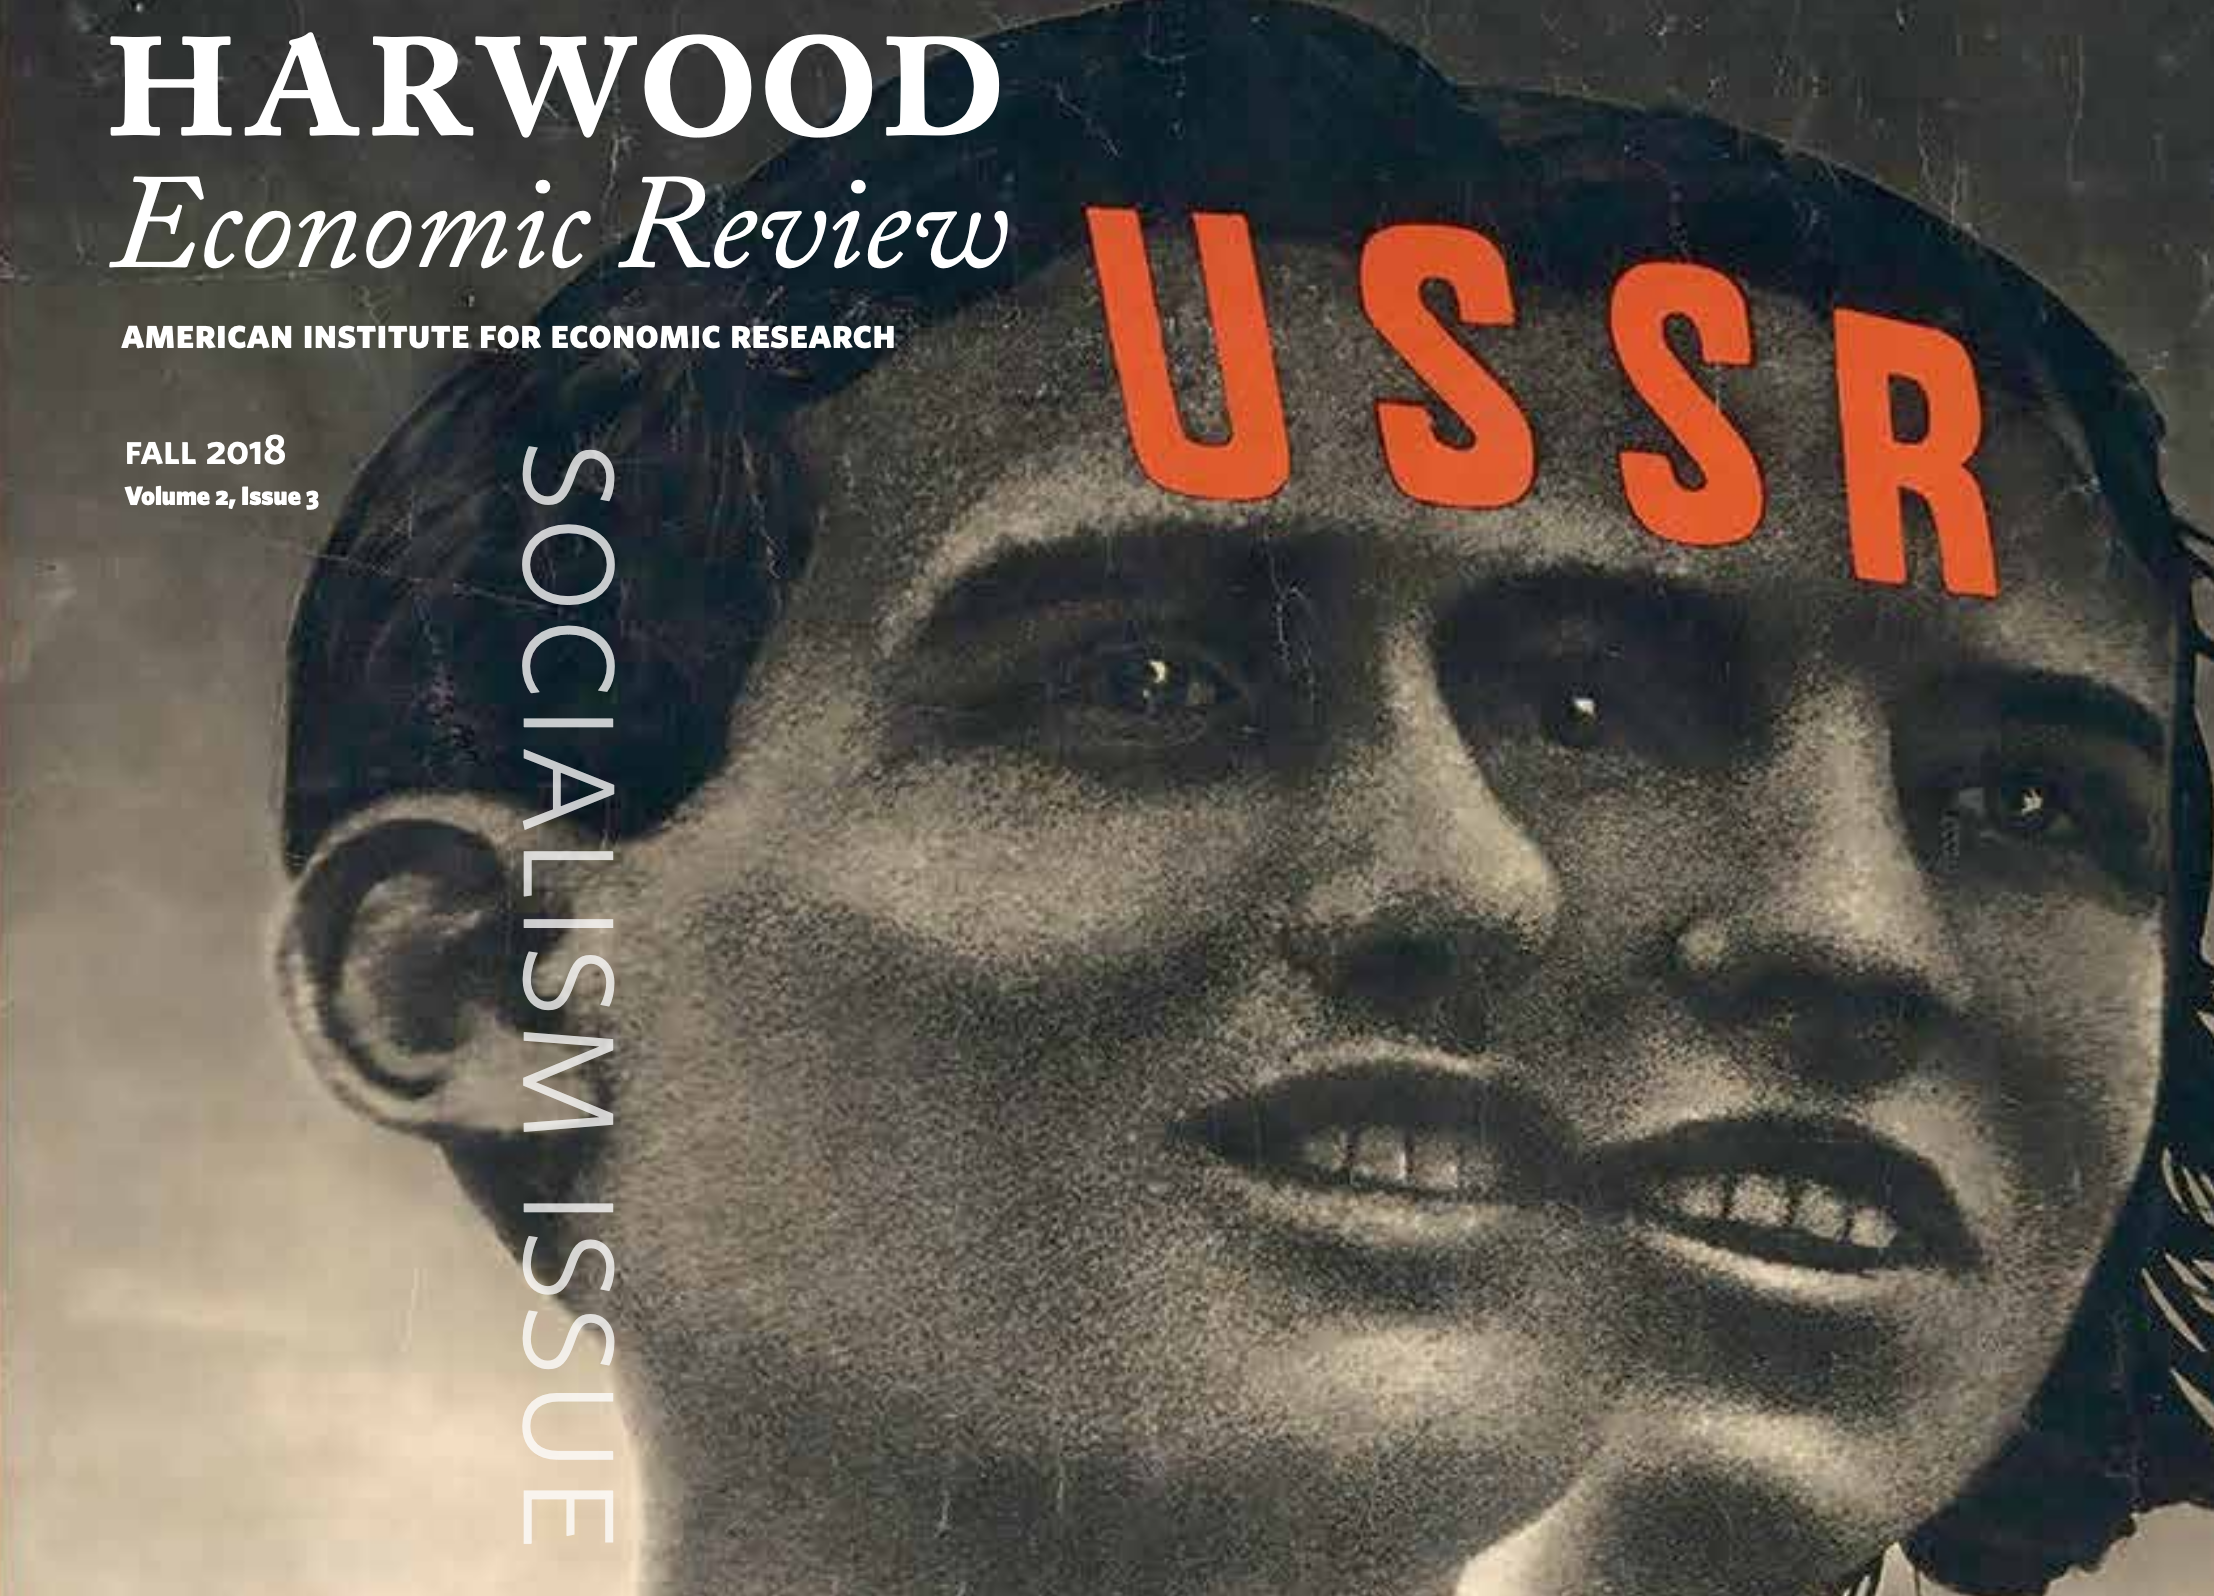 harwood-socialism-issue